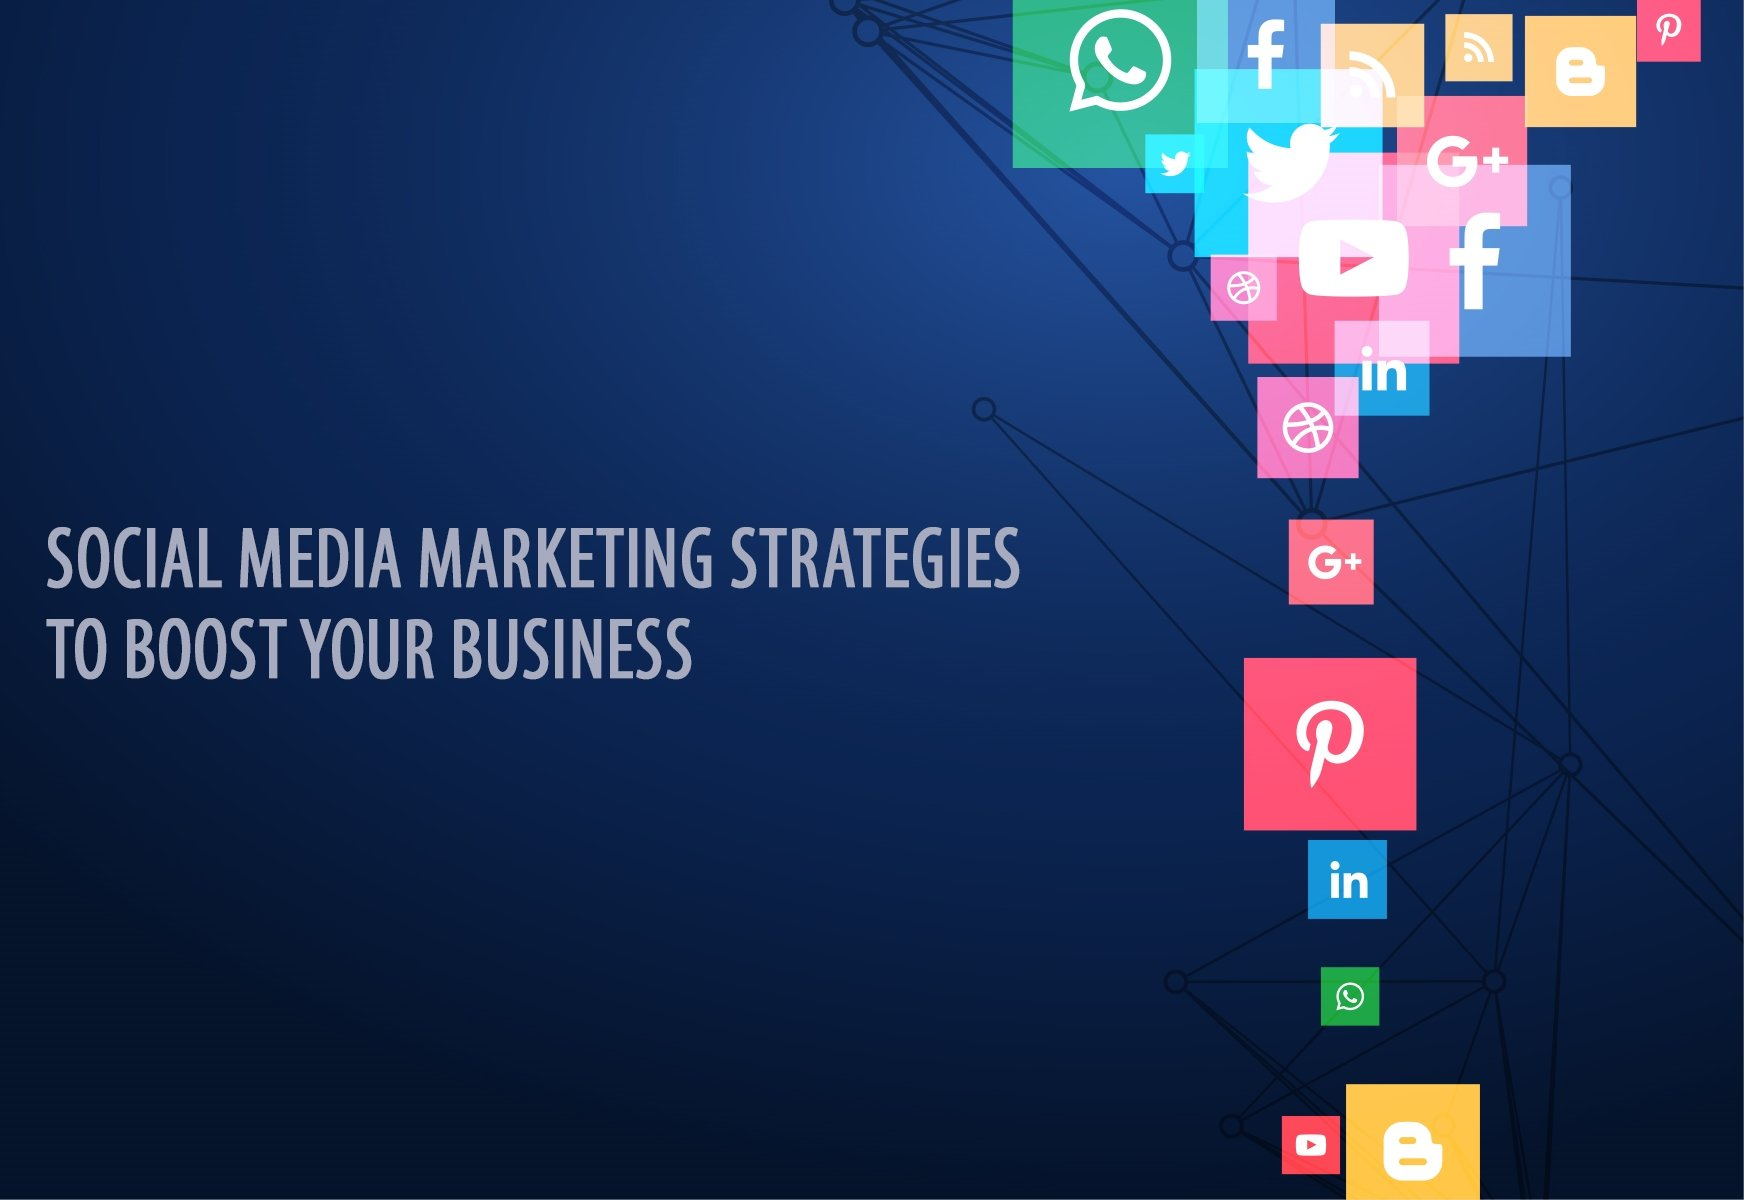 Photo of Boost Your Business Strategy on Social Media